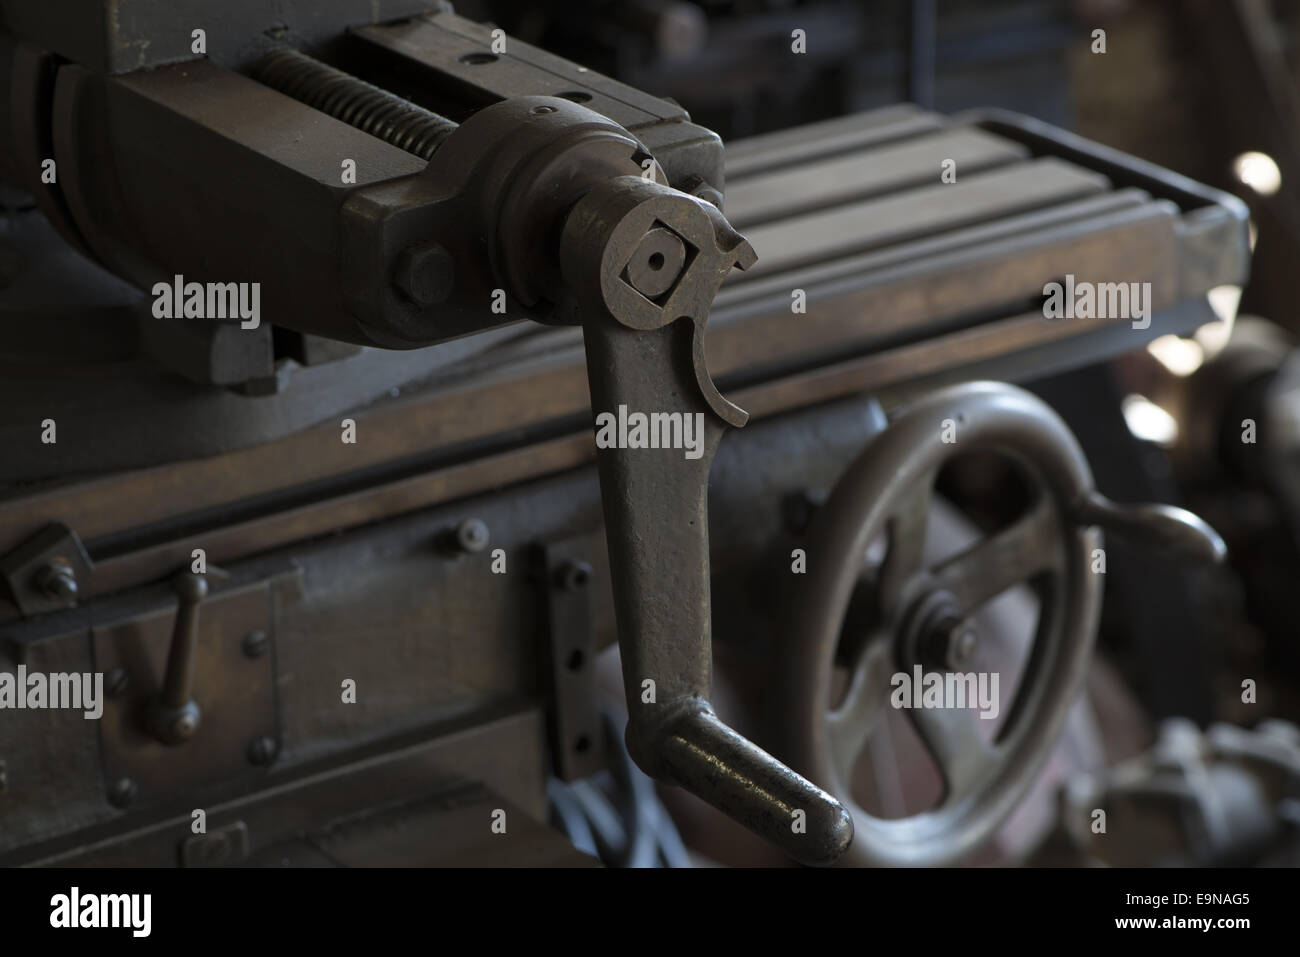 Lathe of a Locksmith - Stock Image